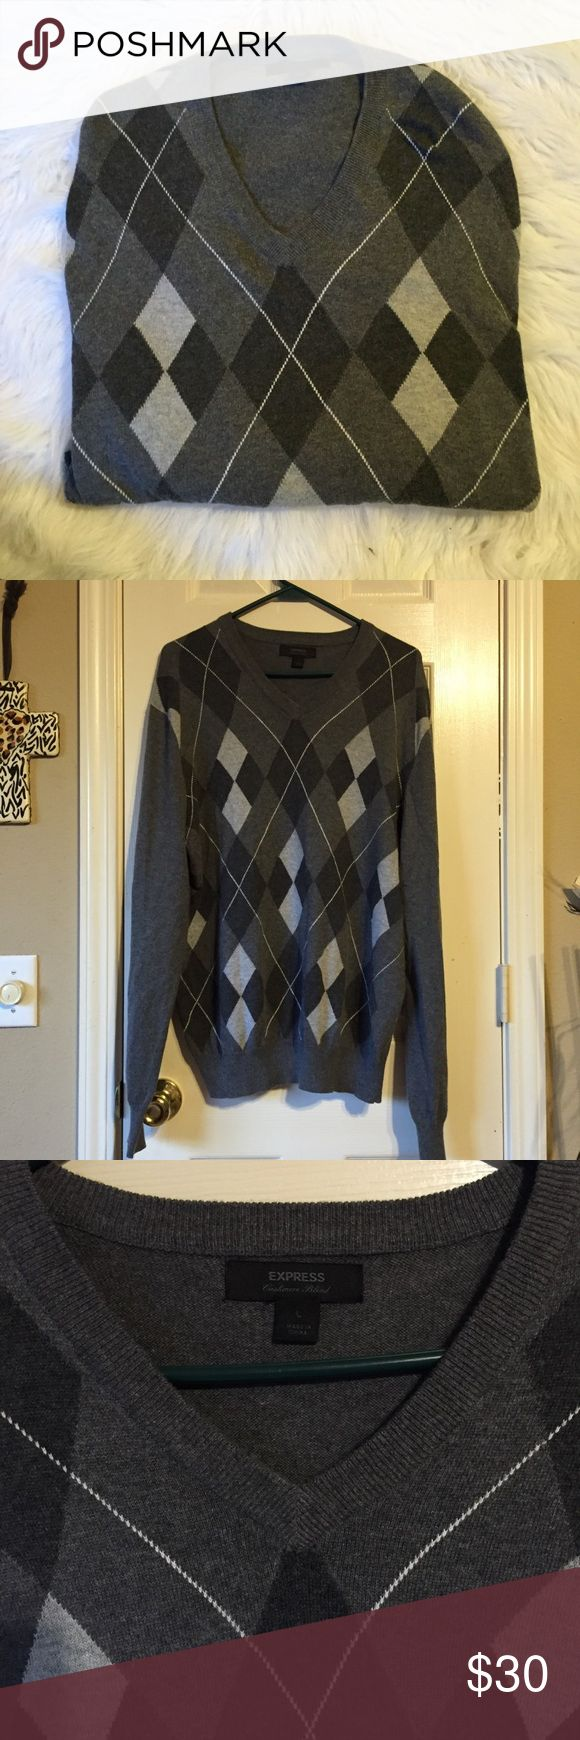 Express cashmere blend argyle sweater Express argyle sweater with different shades of gray and white. 85% cotton 15% cashmere. V-neck, long sleeves with ribbed elastic cuffs and straight hem with ribbed elastic. Express Sweaters V-Neck